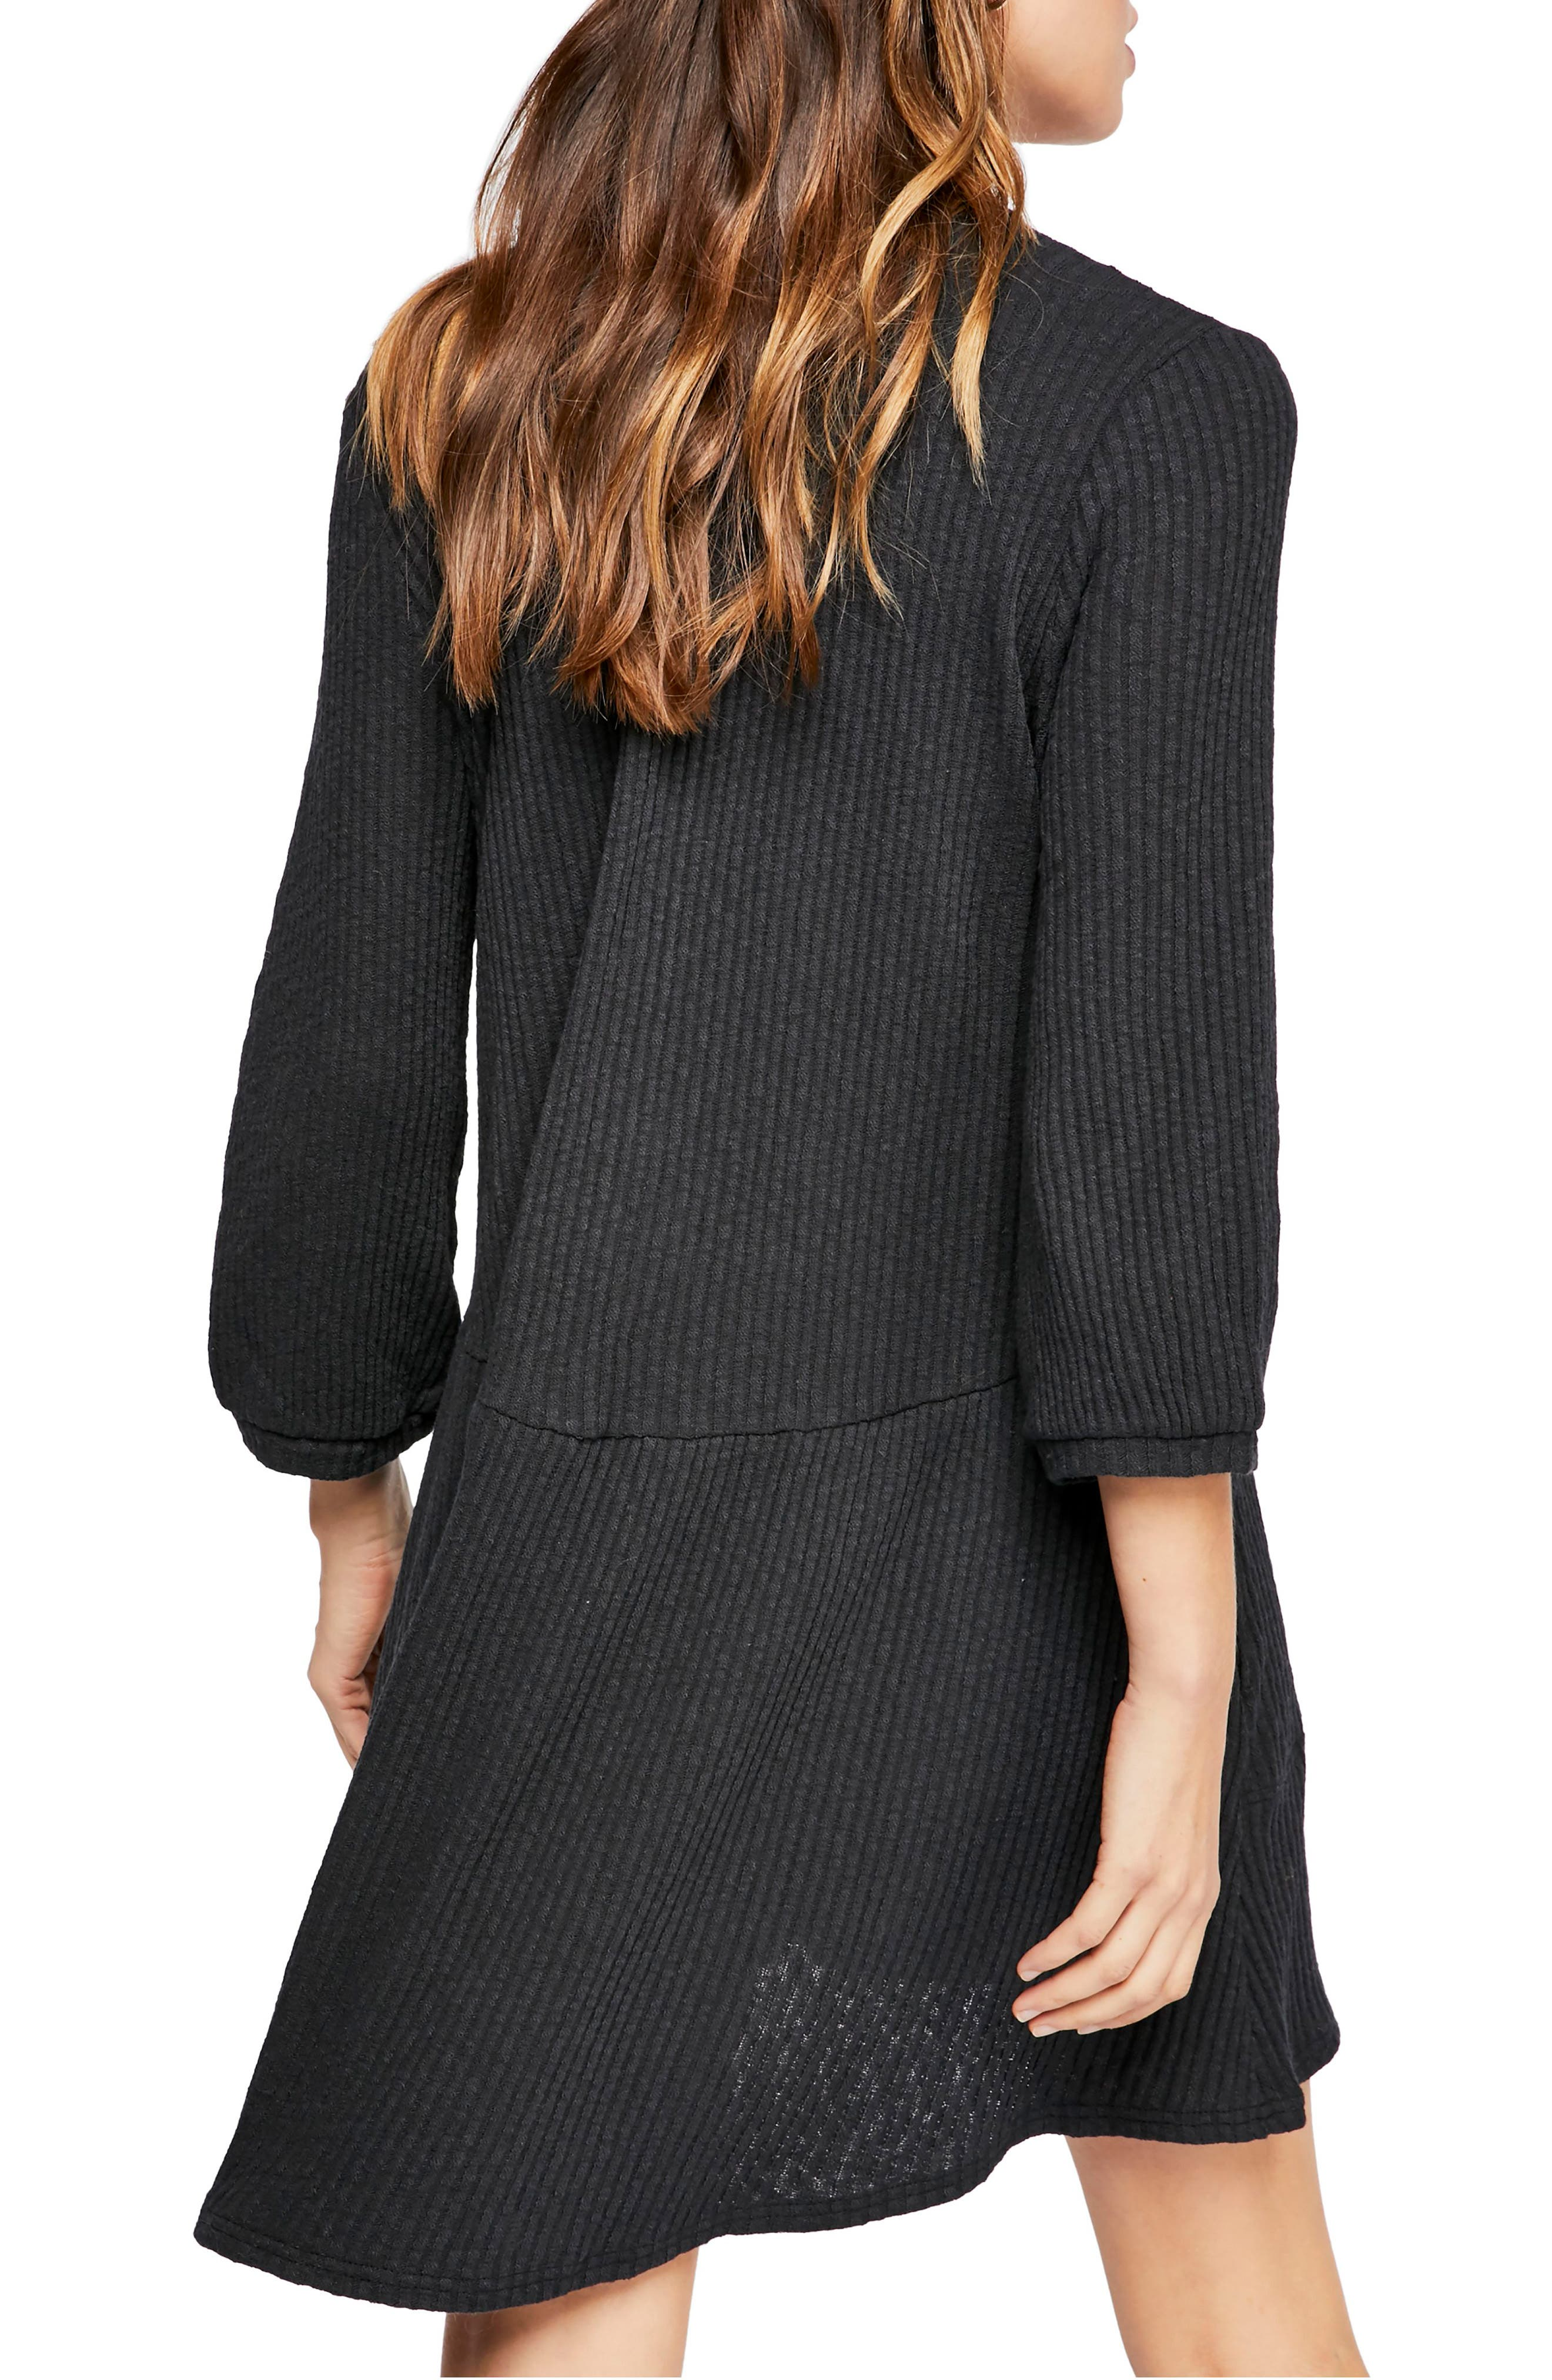 FREE PEOPLE, Endless Summer by Free People Blossom Stretch Cotton Dress, Alternate thumbnail 2, color, BLACK